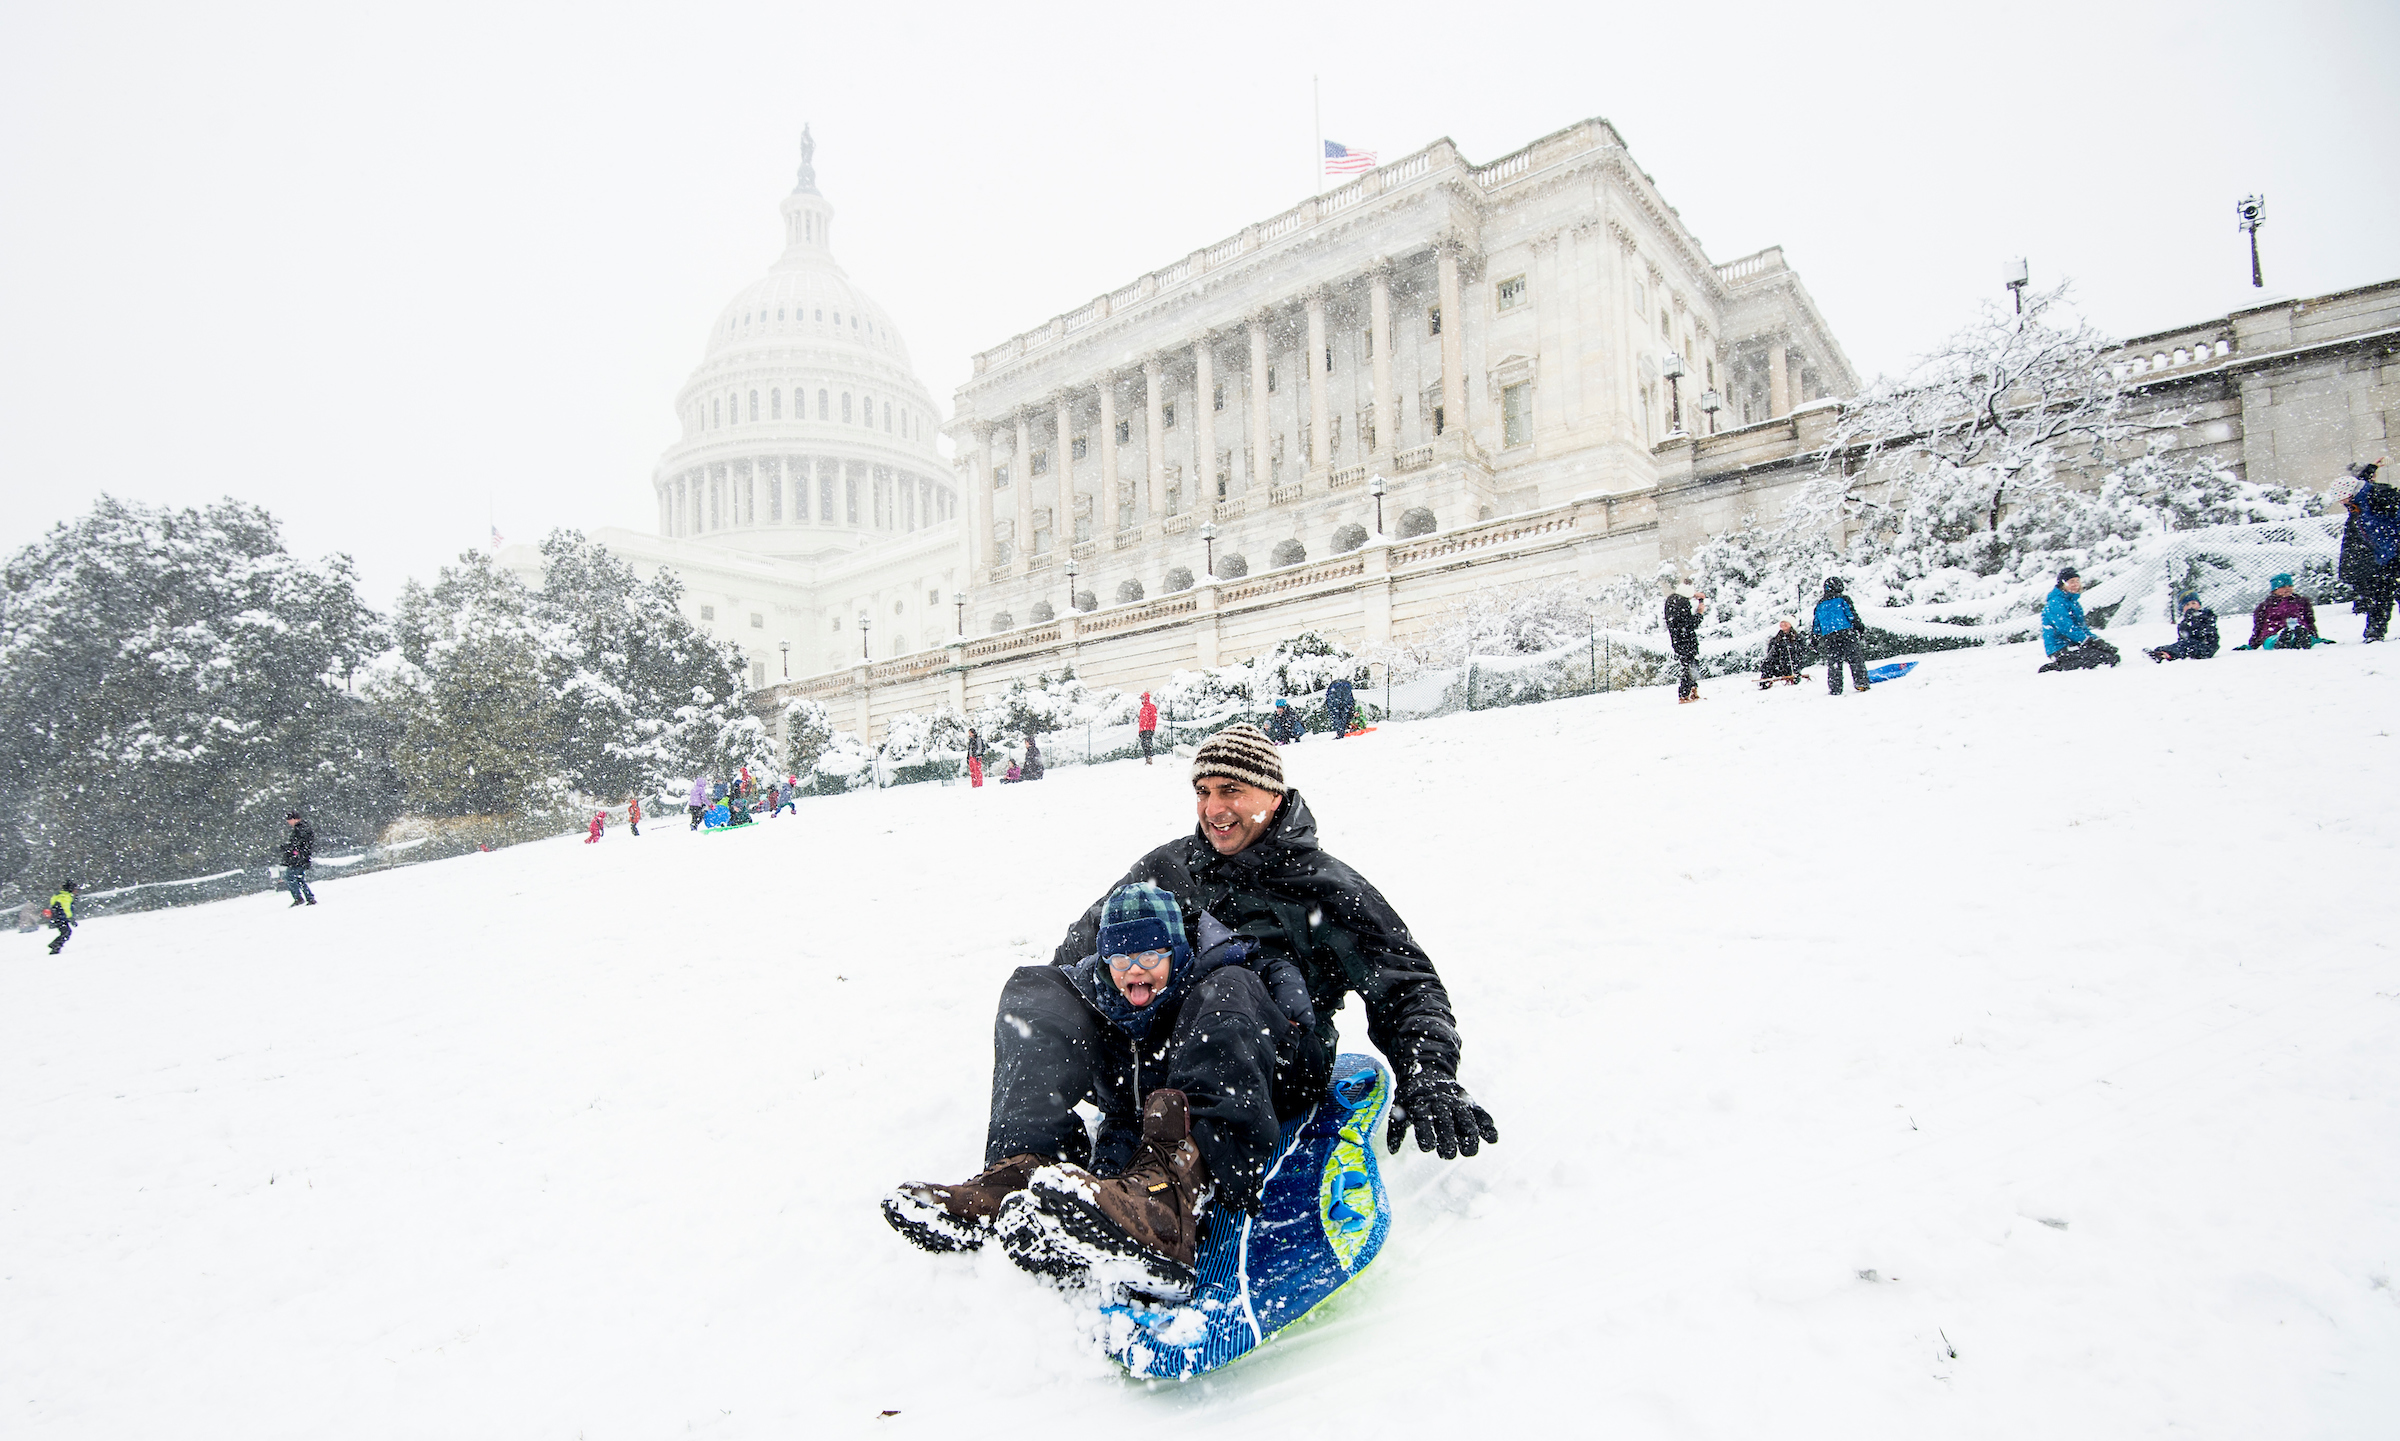 UNITED STATES - MARCH 21: Kids and adults sled down the hill on the west side of the Capitol during the snow storm in Washington on Wednesday, March 21, 2018. (Photo By Bill Clark/CQ Roll Call)